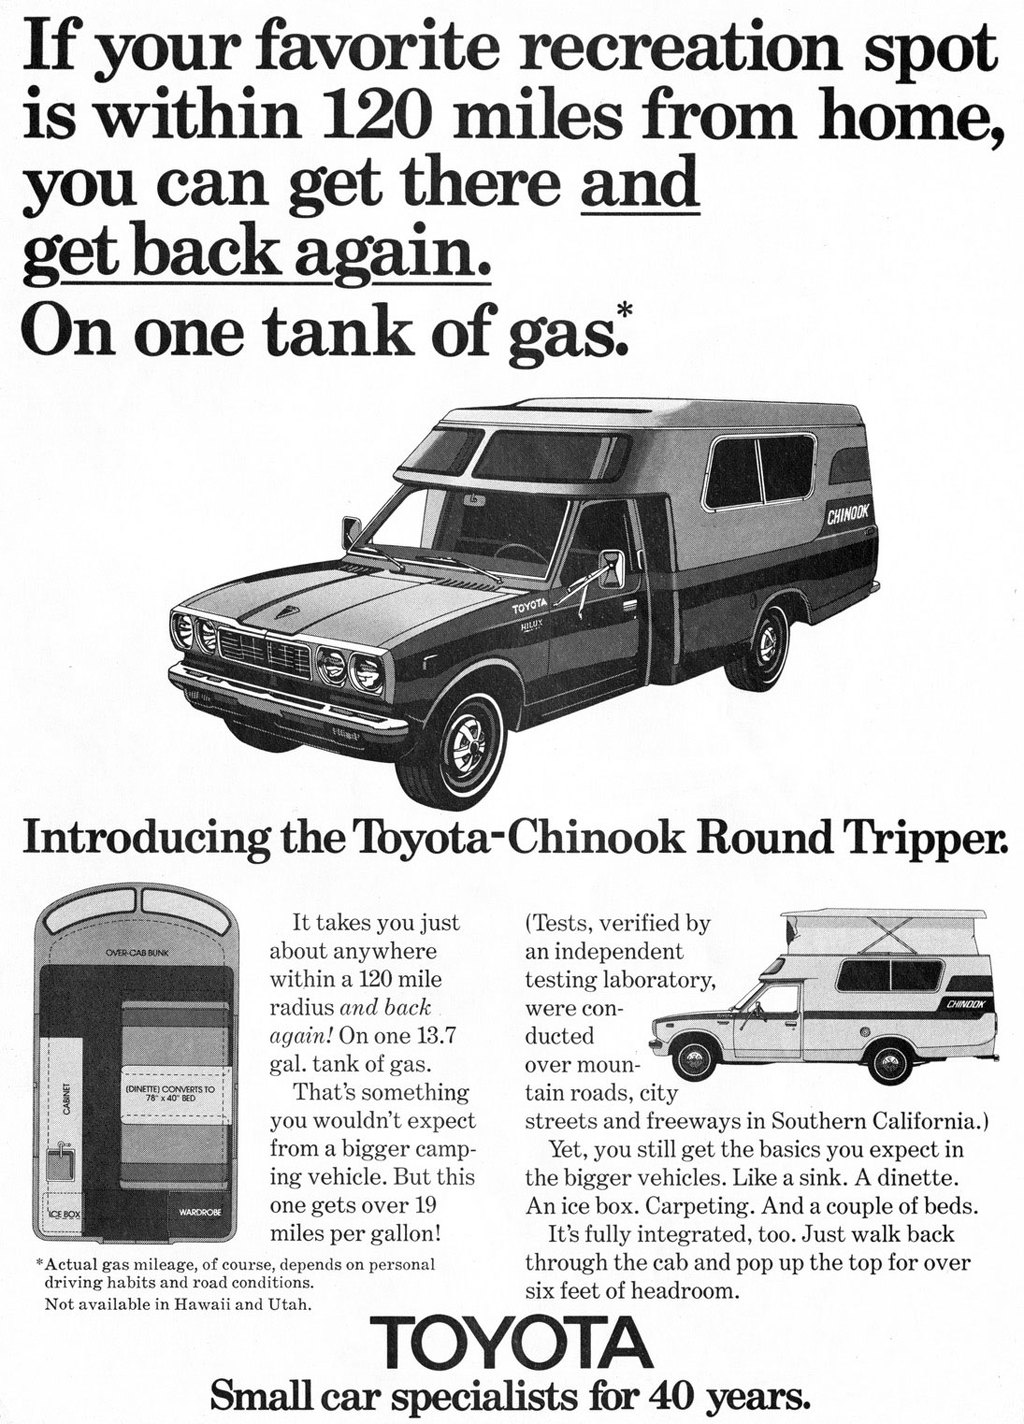 If your favorite recreation spot is within 120 miles from home, you can get there and get back again. On one tank of gas. Introducing the Toyota-Chinook Round Tripper.   (OINUTE) CONVERTS TO 78' x 40'' 8E-0   It takes you just about anywhere within a 120 mile radius and back again! On one 13.7 gal. tank of gas. That's something you wouldn't expect from a bigger camp-ing vehicle. But this one gets over 19 miles per gallon! *Actual gas mileage, of course, depends on personal driving habits and road conditions. Not available in Hawaii and Utah.  (Tests, verified by an independent testing laboratory, were con-ducted over moun-tain roads, city streets and freeways in Southern California.) Yet, you still get the basics you expect in the bigger vehicles. Like a sink. A dinette. An ice box. Carpeting. And a couple of beds. It's fully integrated, too. Just walk back through the cab and pop up the top for over six feet of headroom.   ZW/N01.1A'   TOYOTA Small car specialists for 40 years.